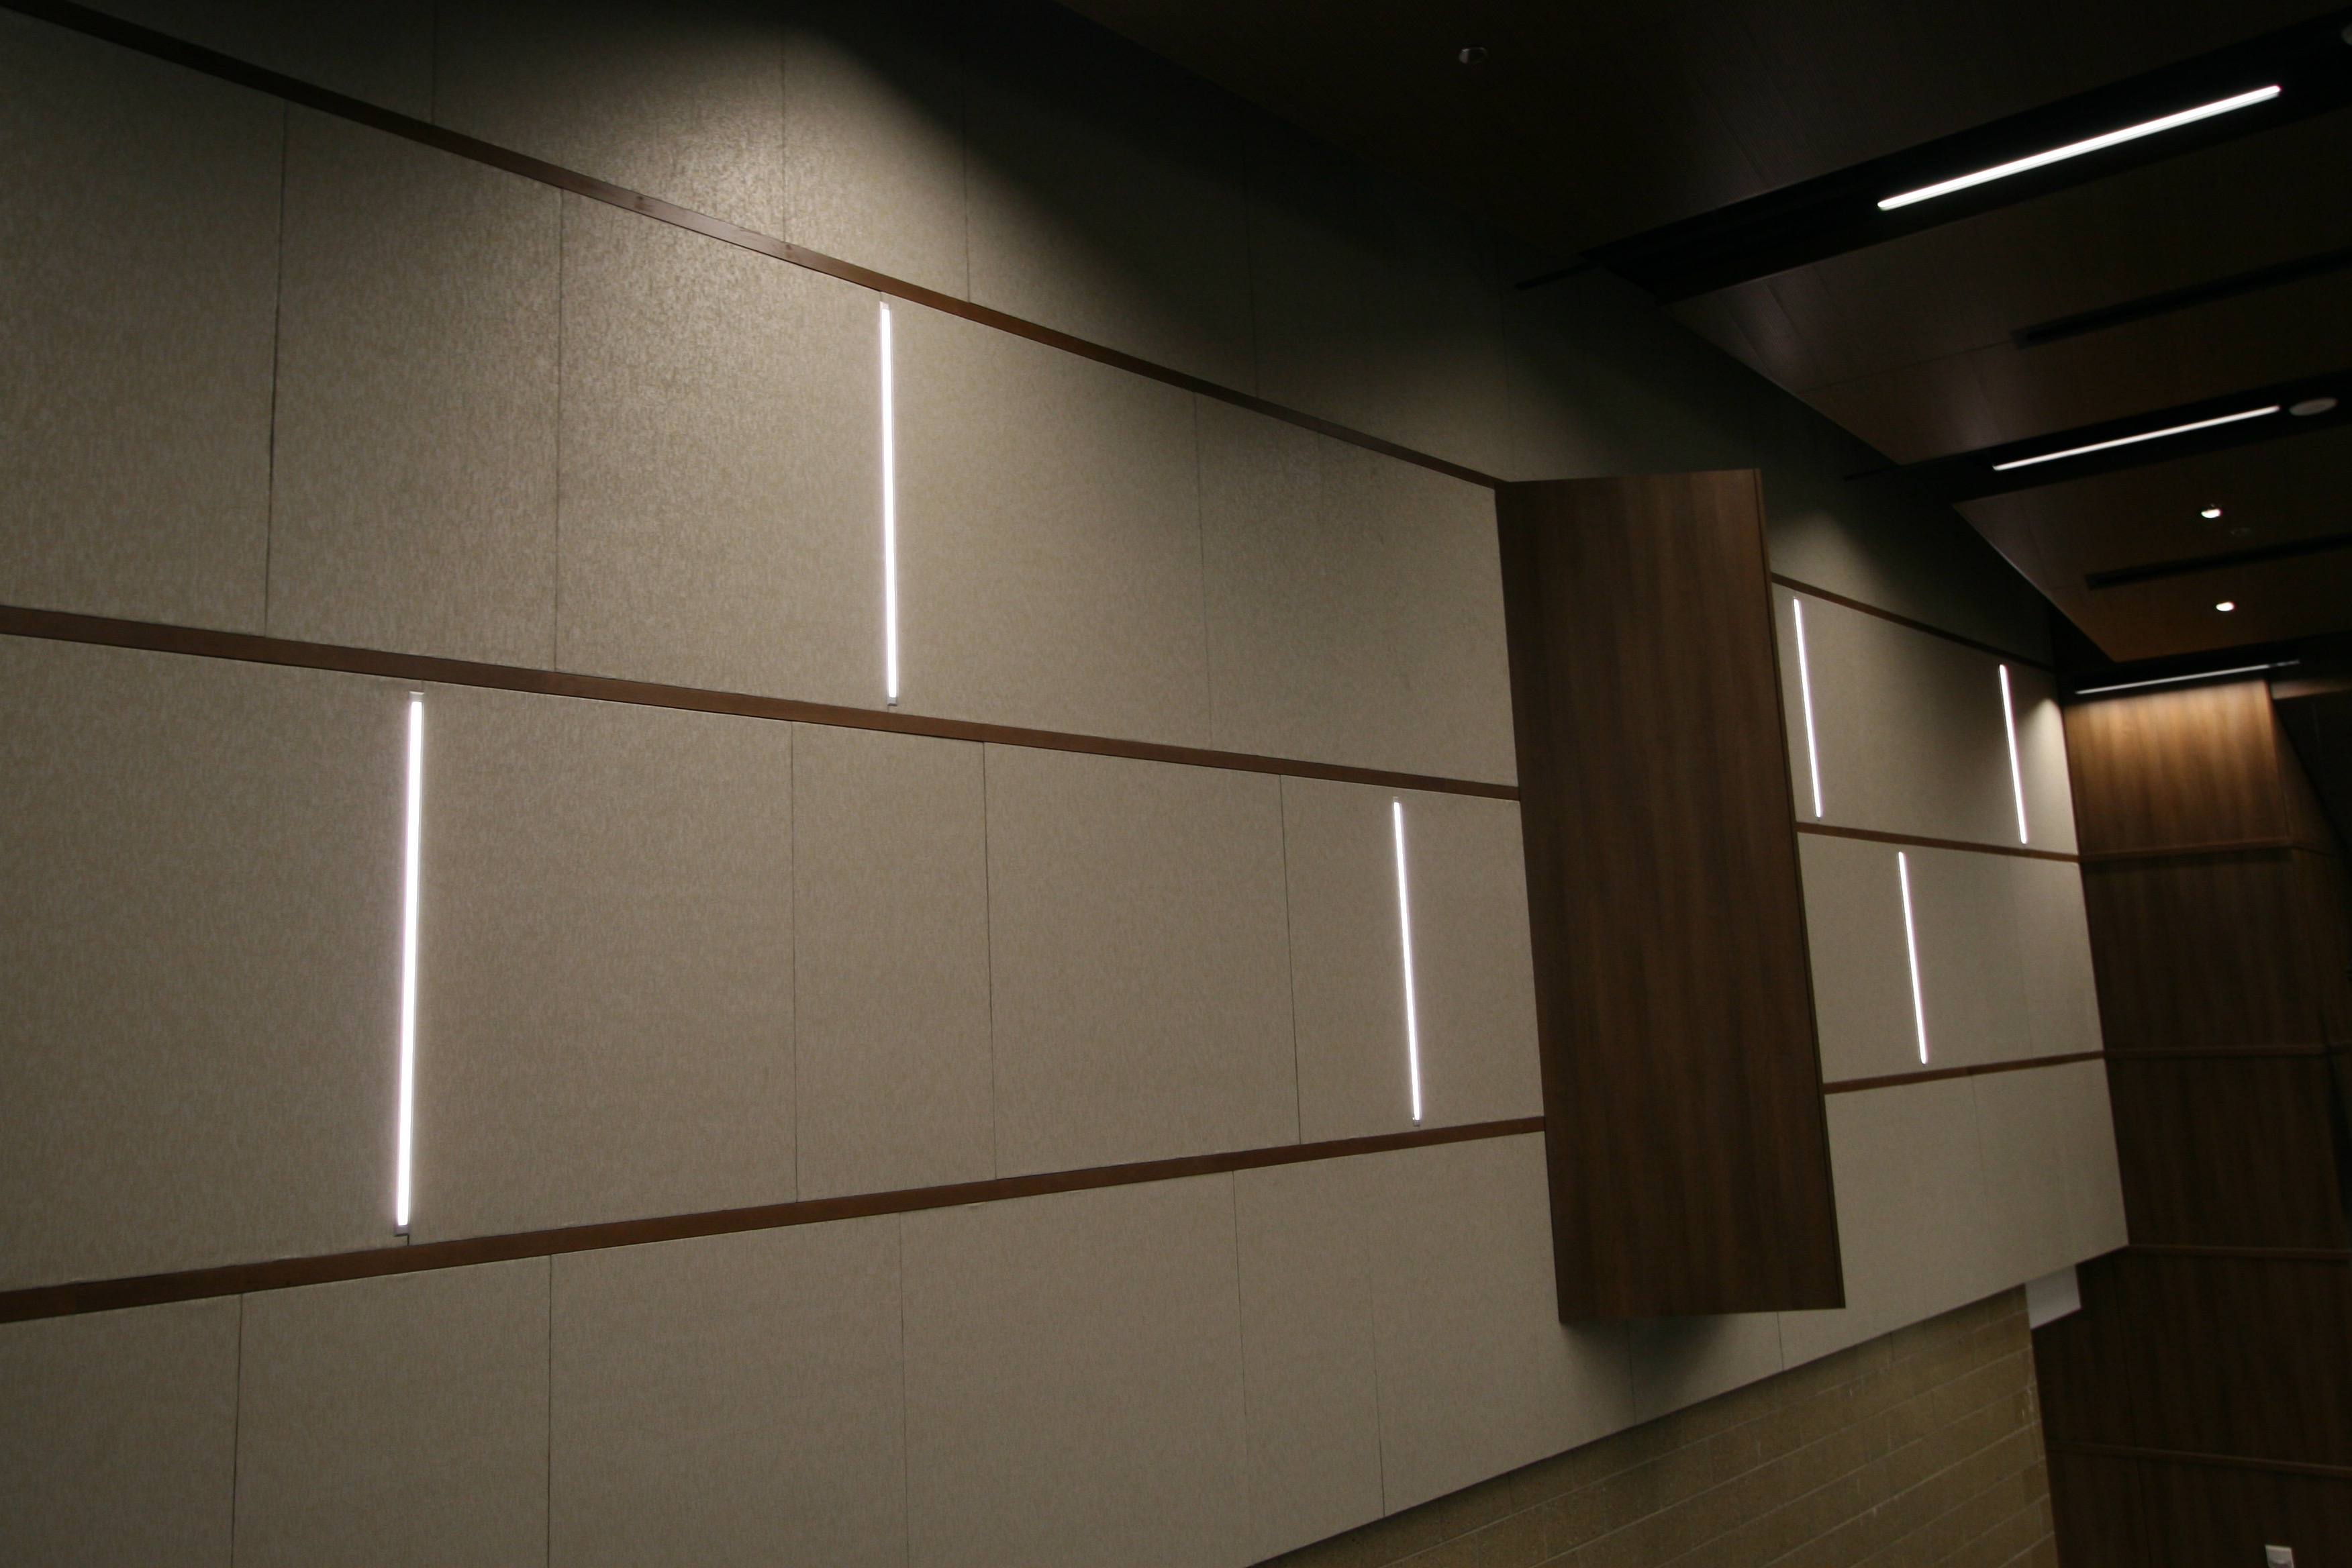 Fabric Covered Wall Panels : Fabric wrapped acoustical panels mauinc